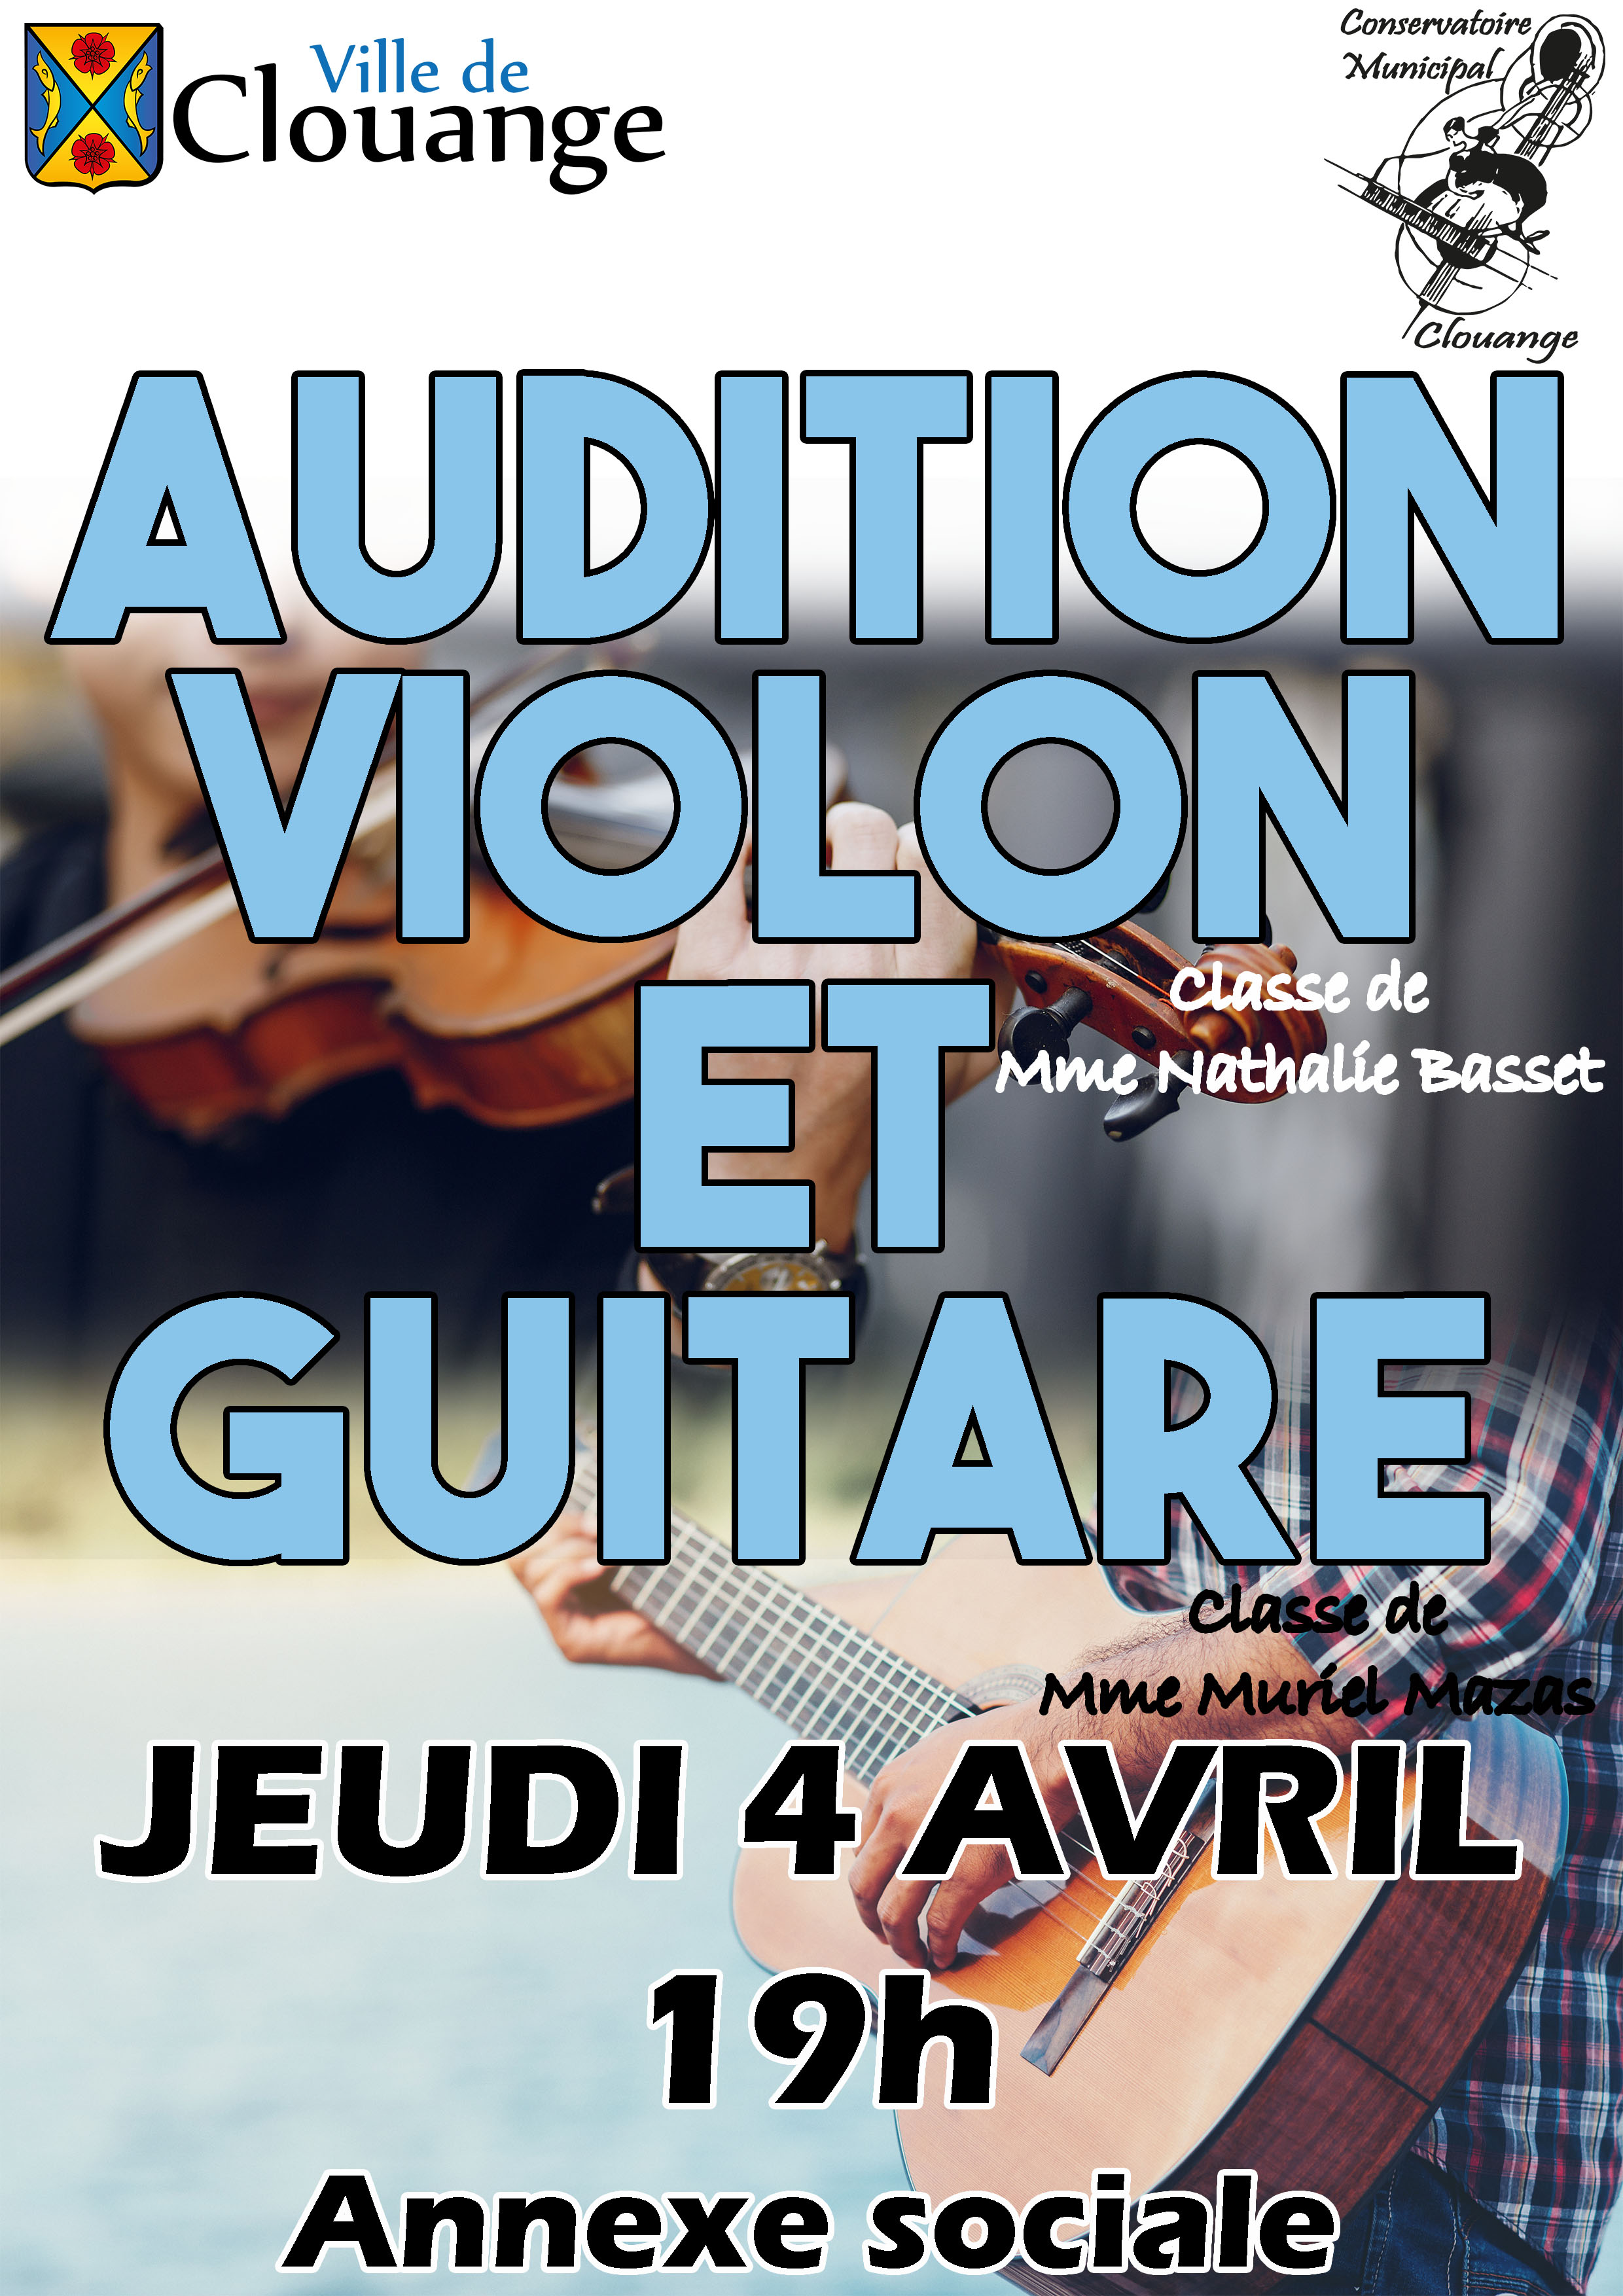 Audition de Guitare et Violon